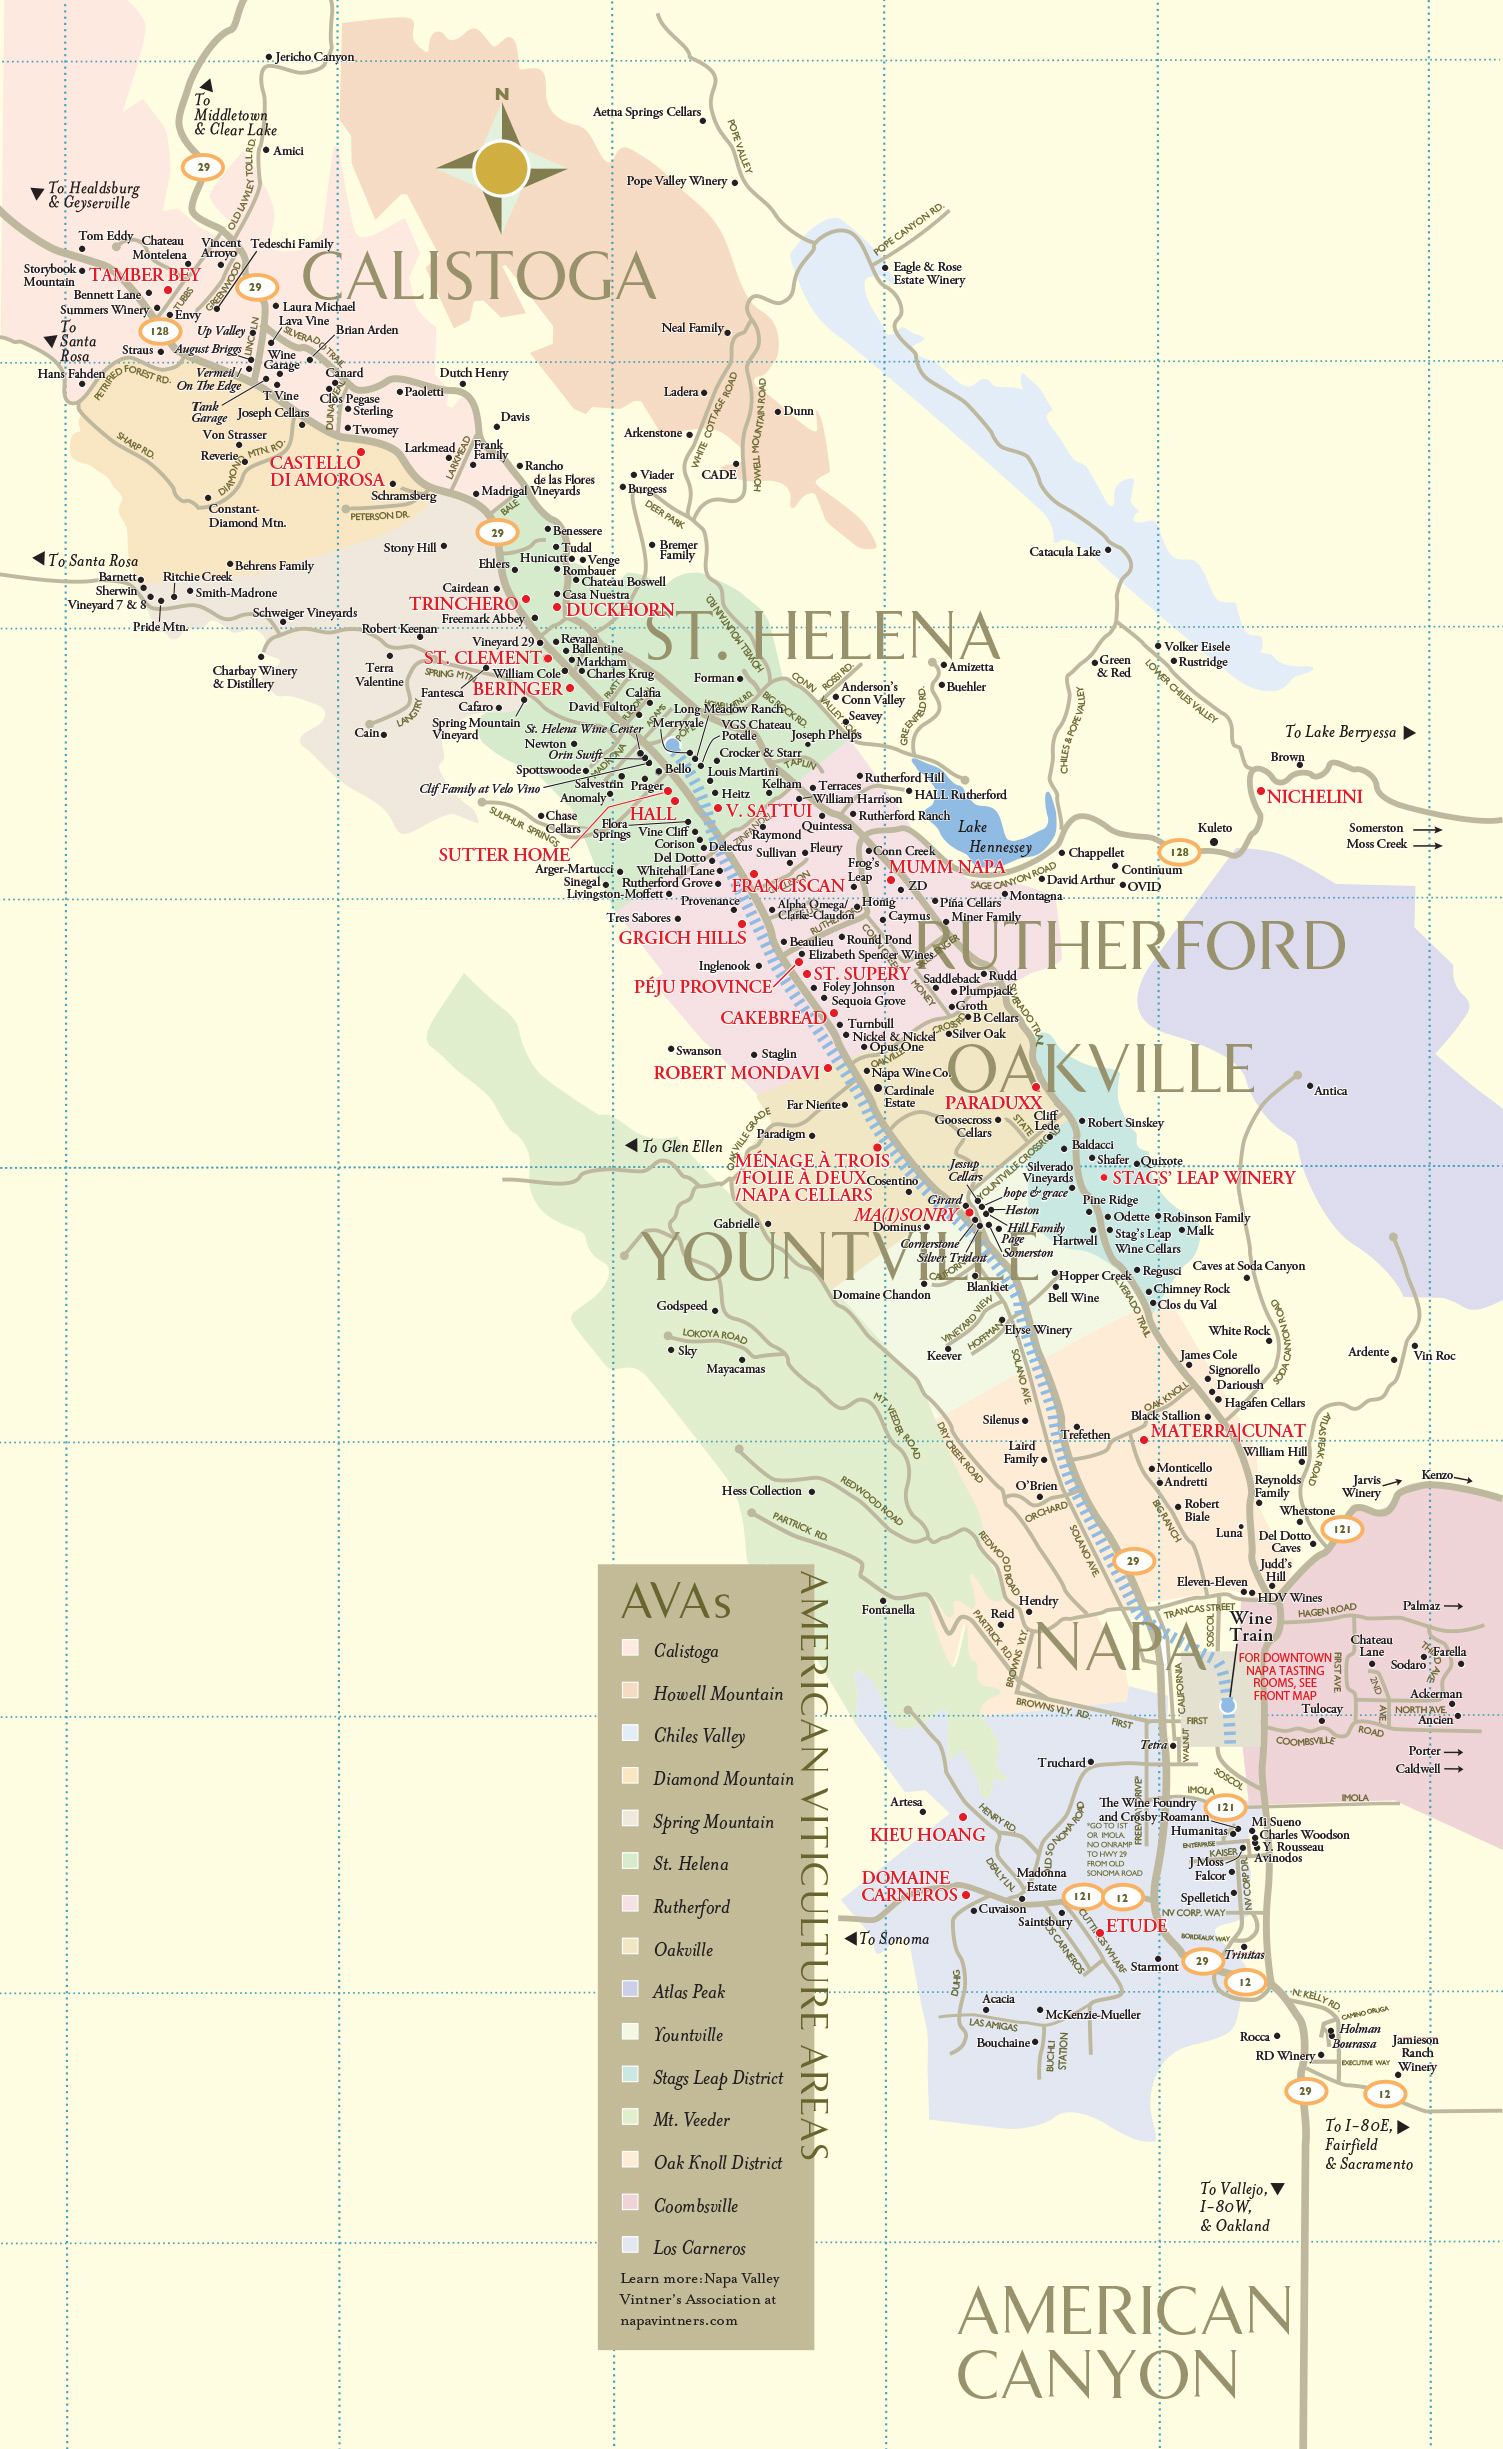 Napa Winery Map Napa Valley Wineries | Wine Tastings, Tours & Winery Map Napa Winery Map